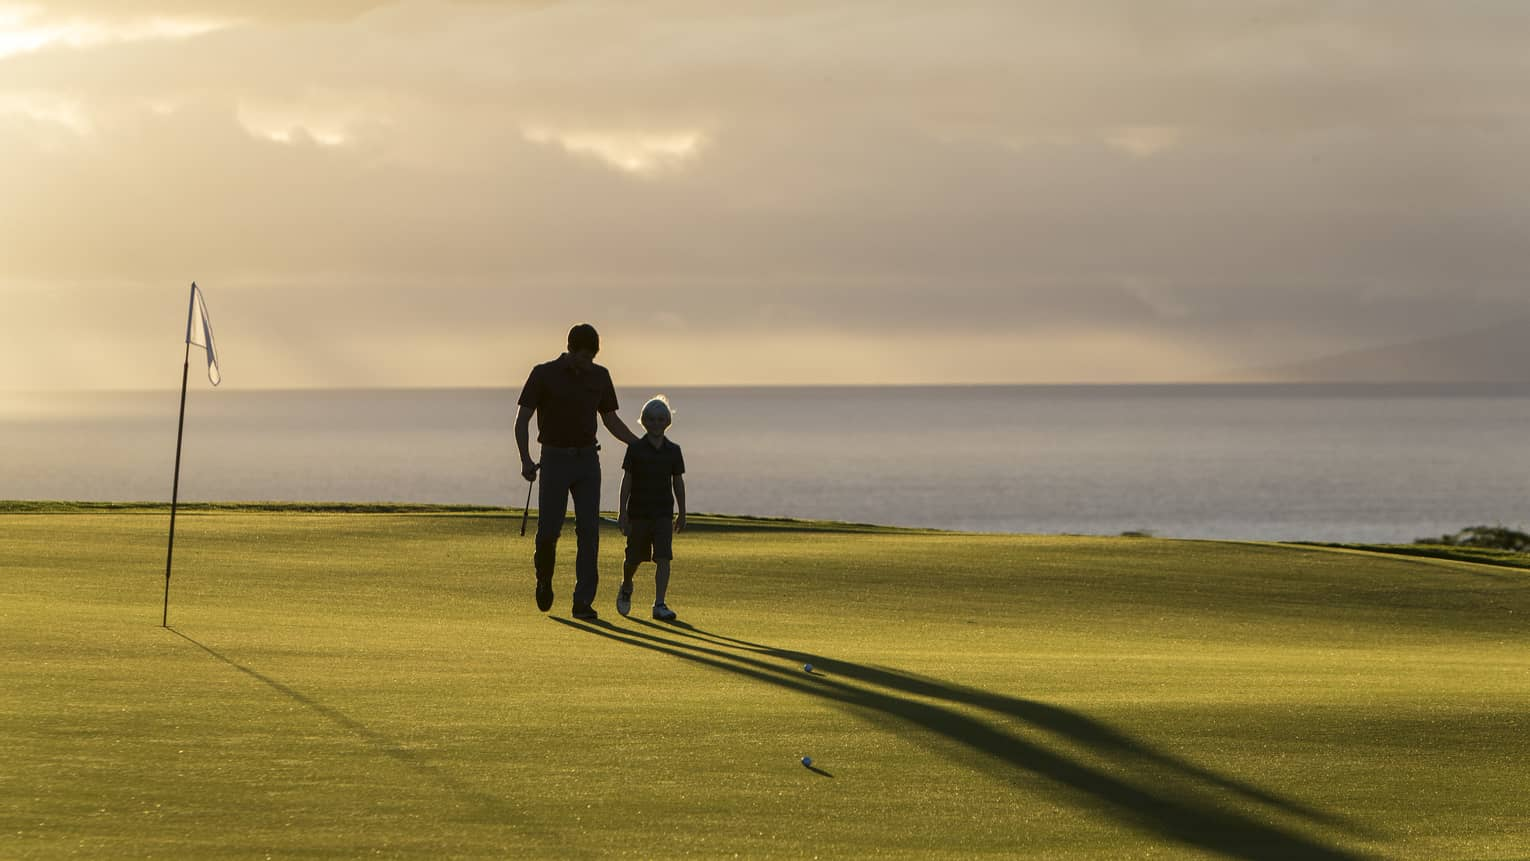 Silhouette of man and boy, flag on pole on golf course green at sunset